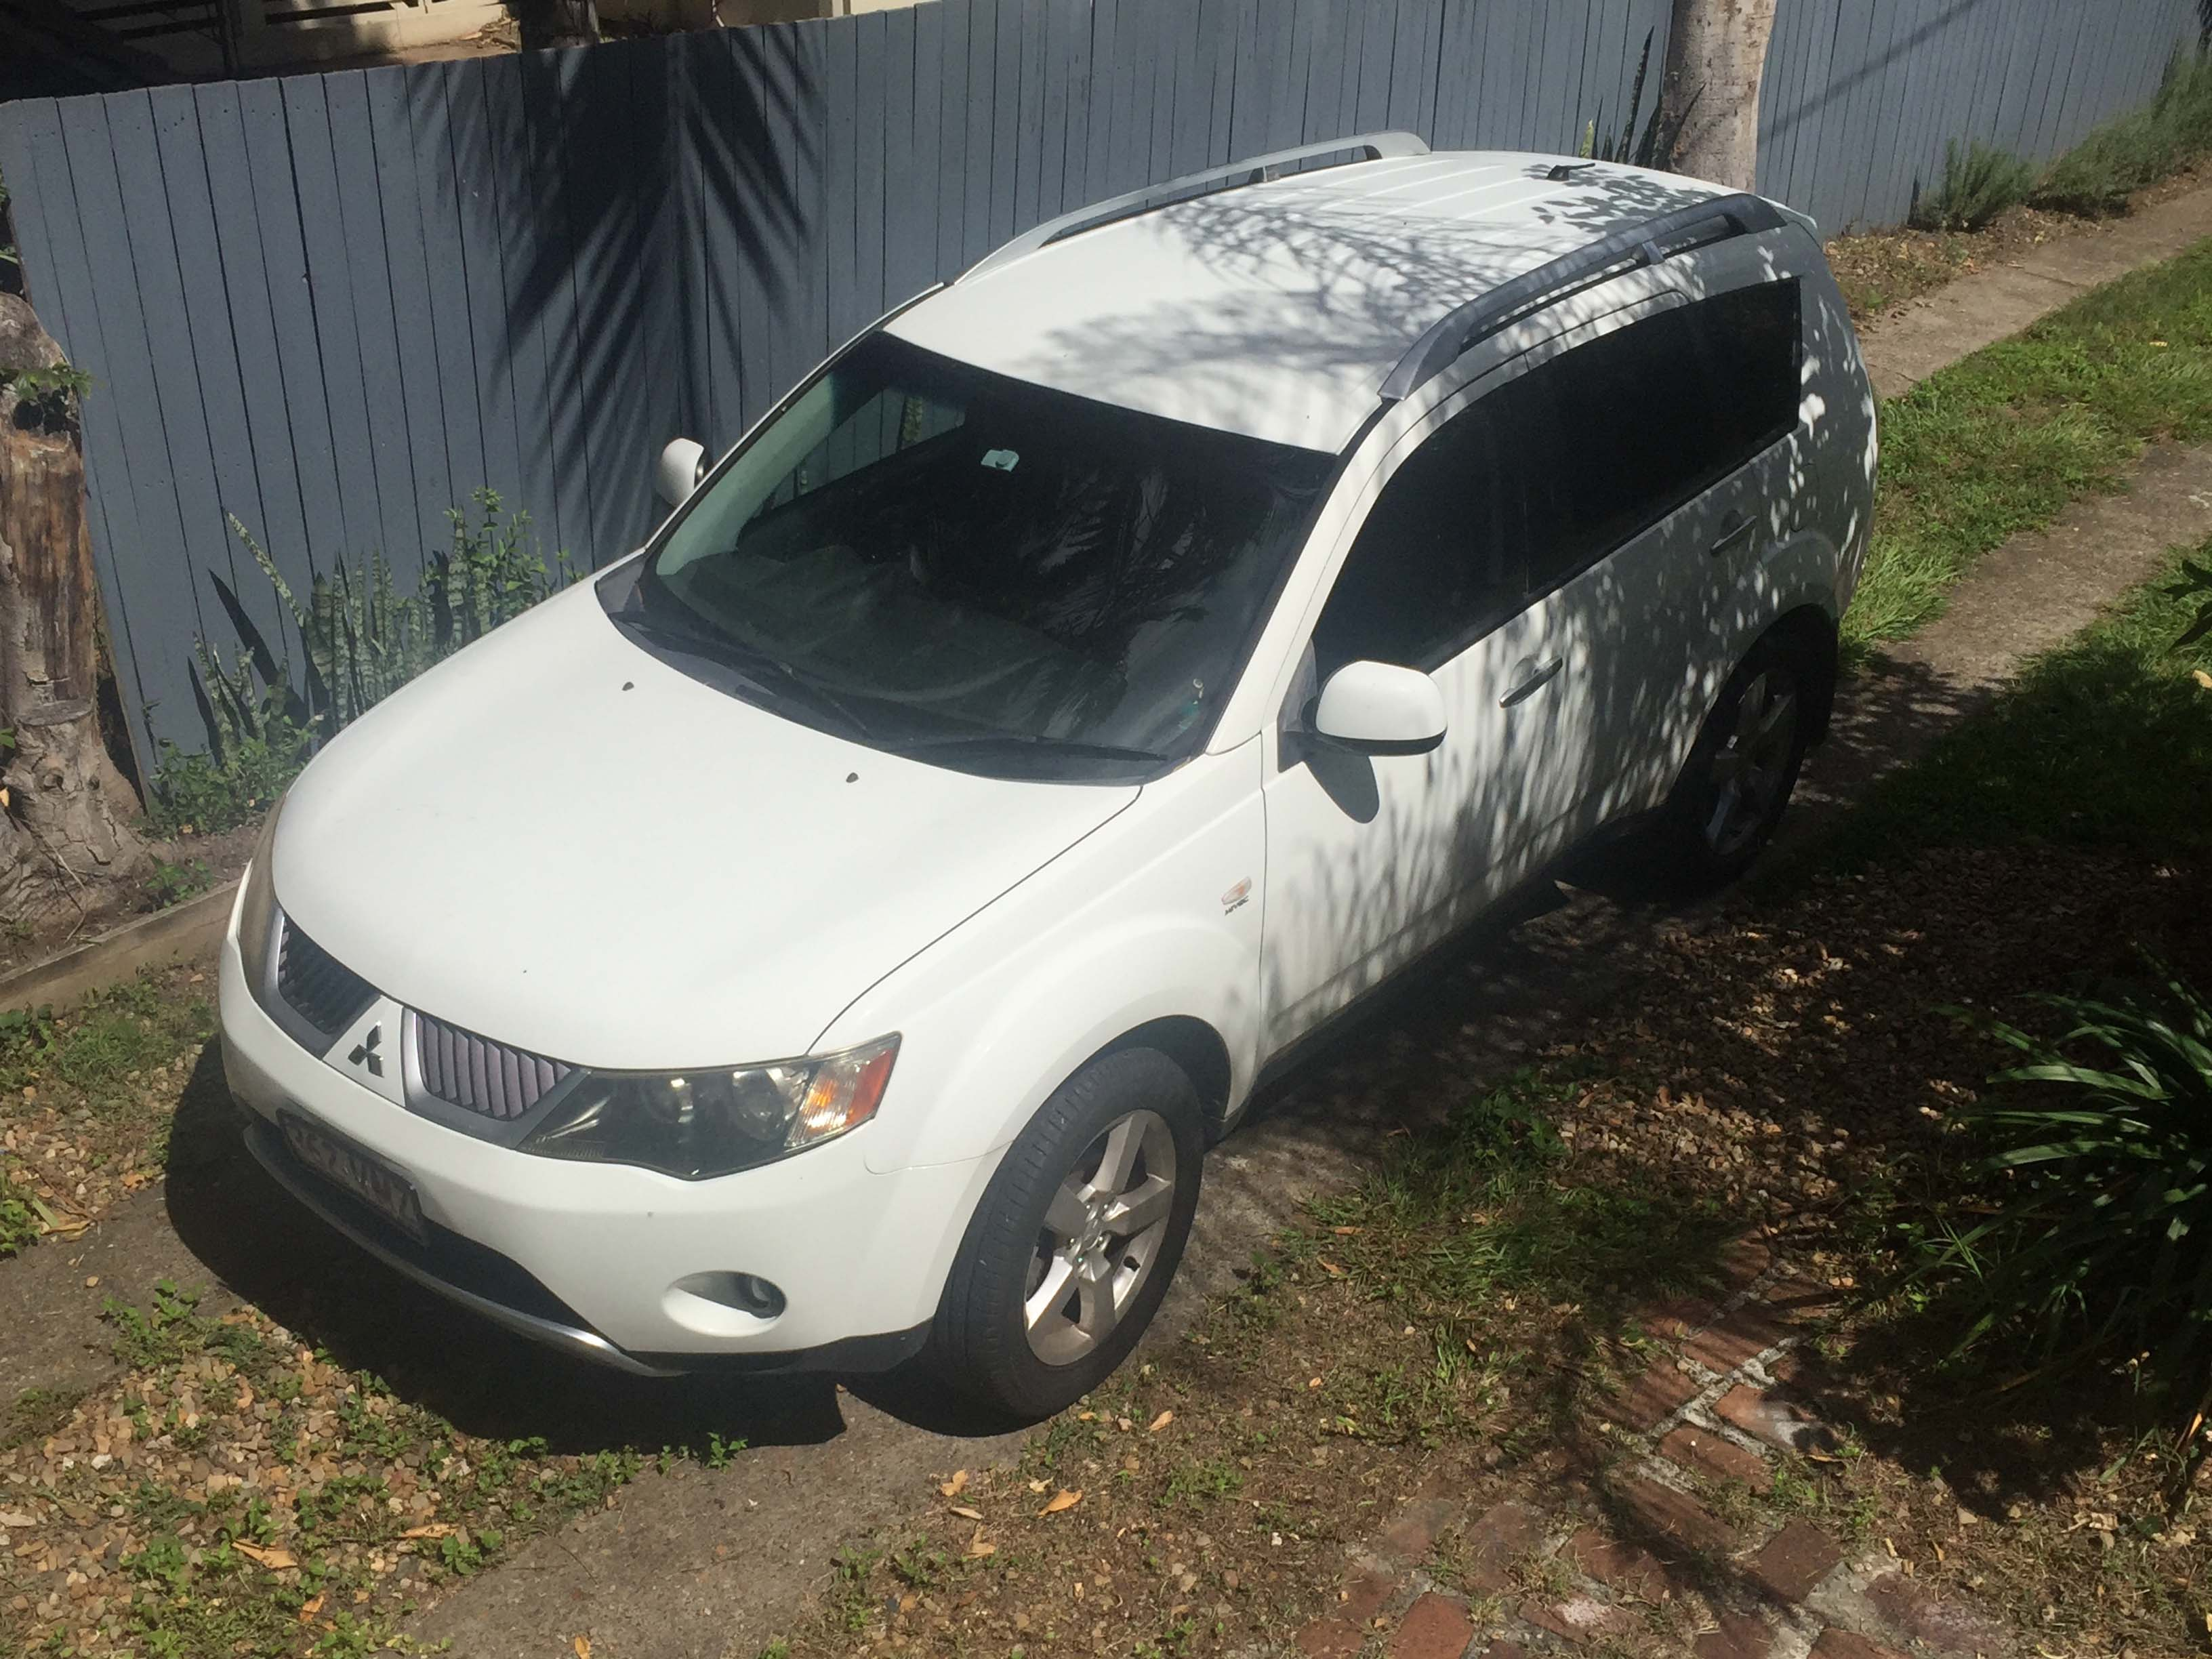 Picture of Markus' 2008 Mitsubishi Outlander